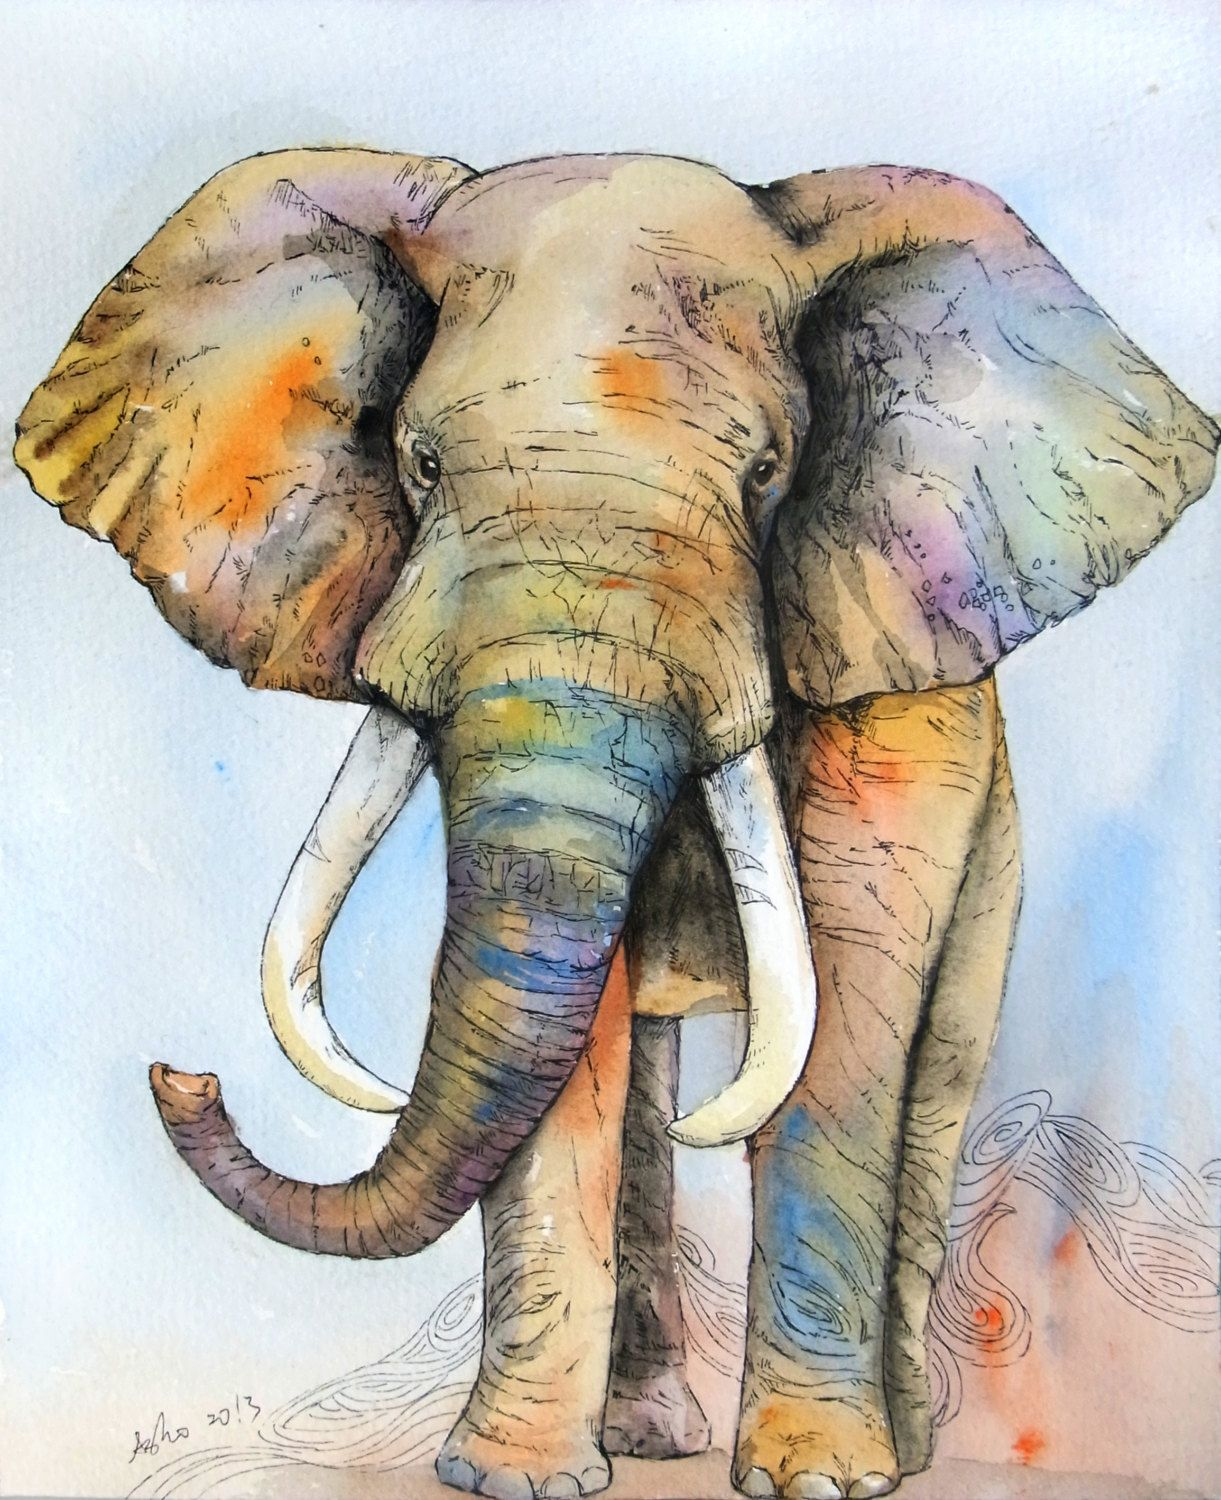 Ooak 8x10 Original Watercolor Elephant Art Nursery Art Children